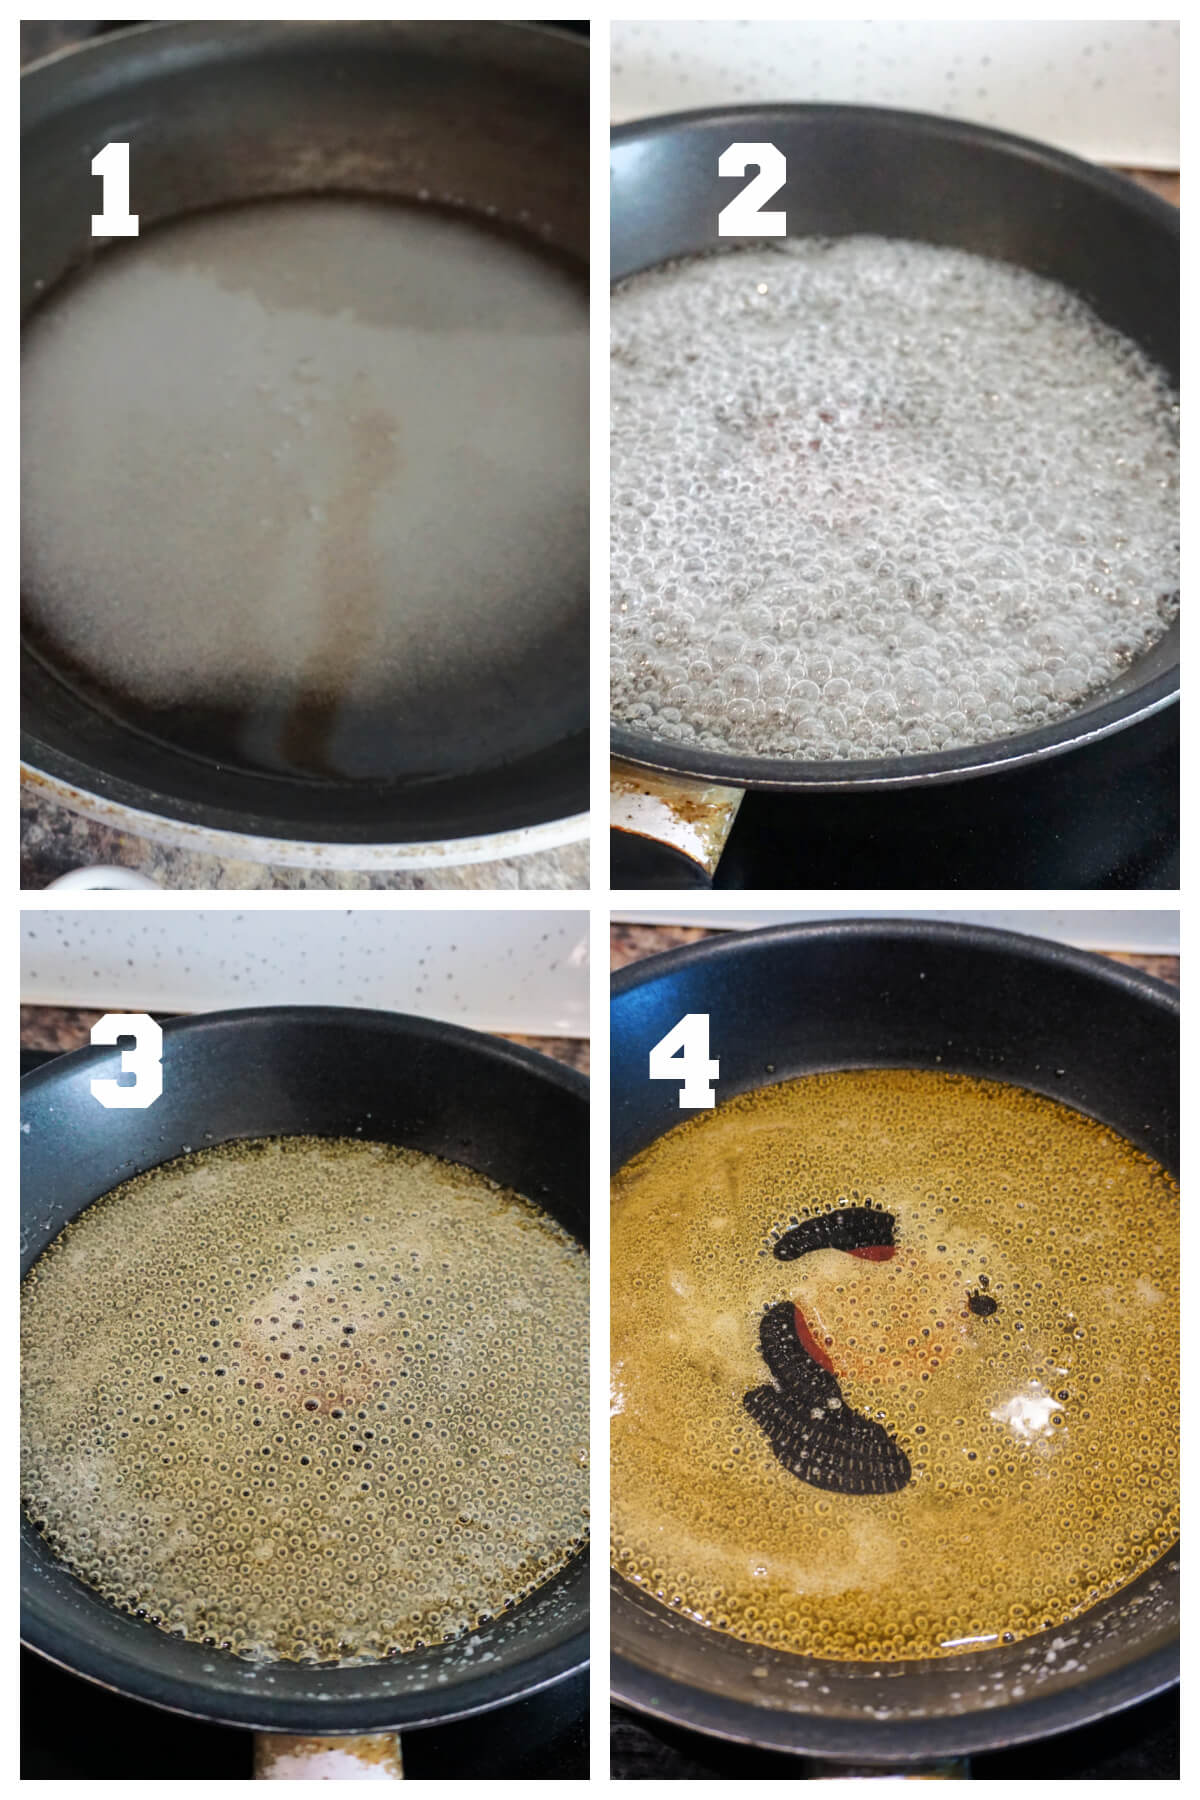 Collage of 4 photos to show how to make caramel for flan